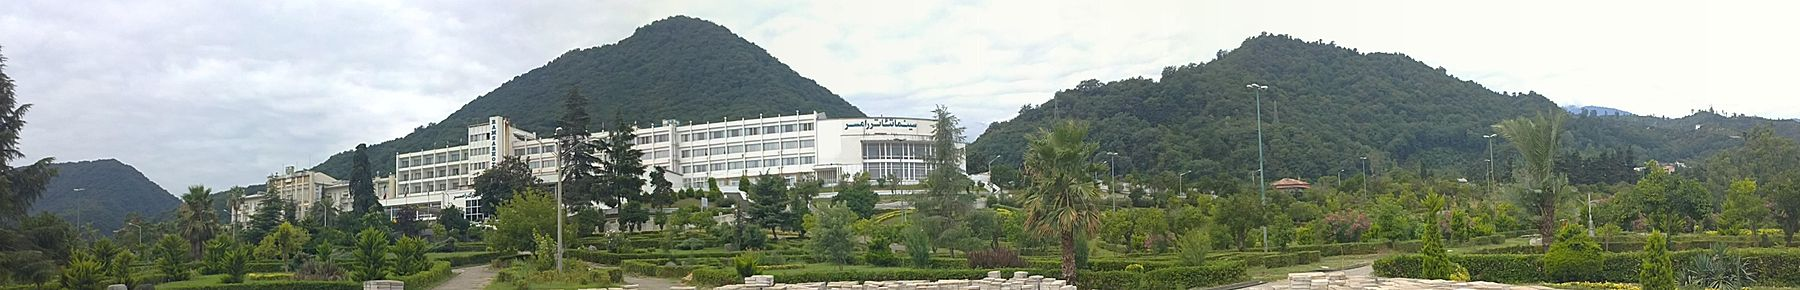 Panorama view - Hotel Ramsar - Jun 2014.JPG